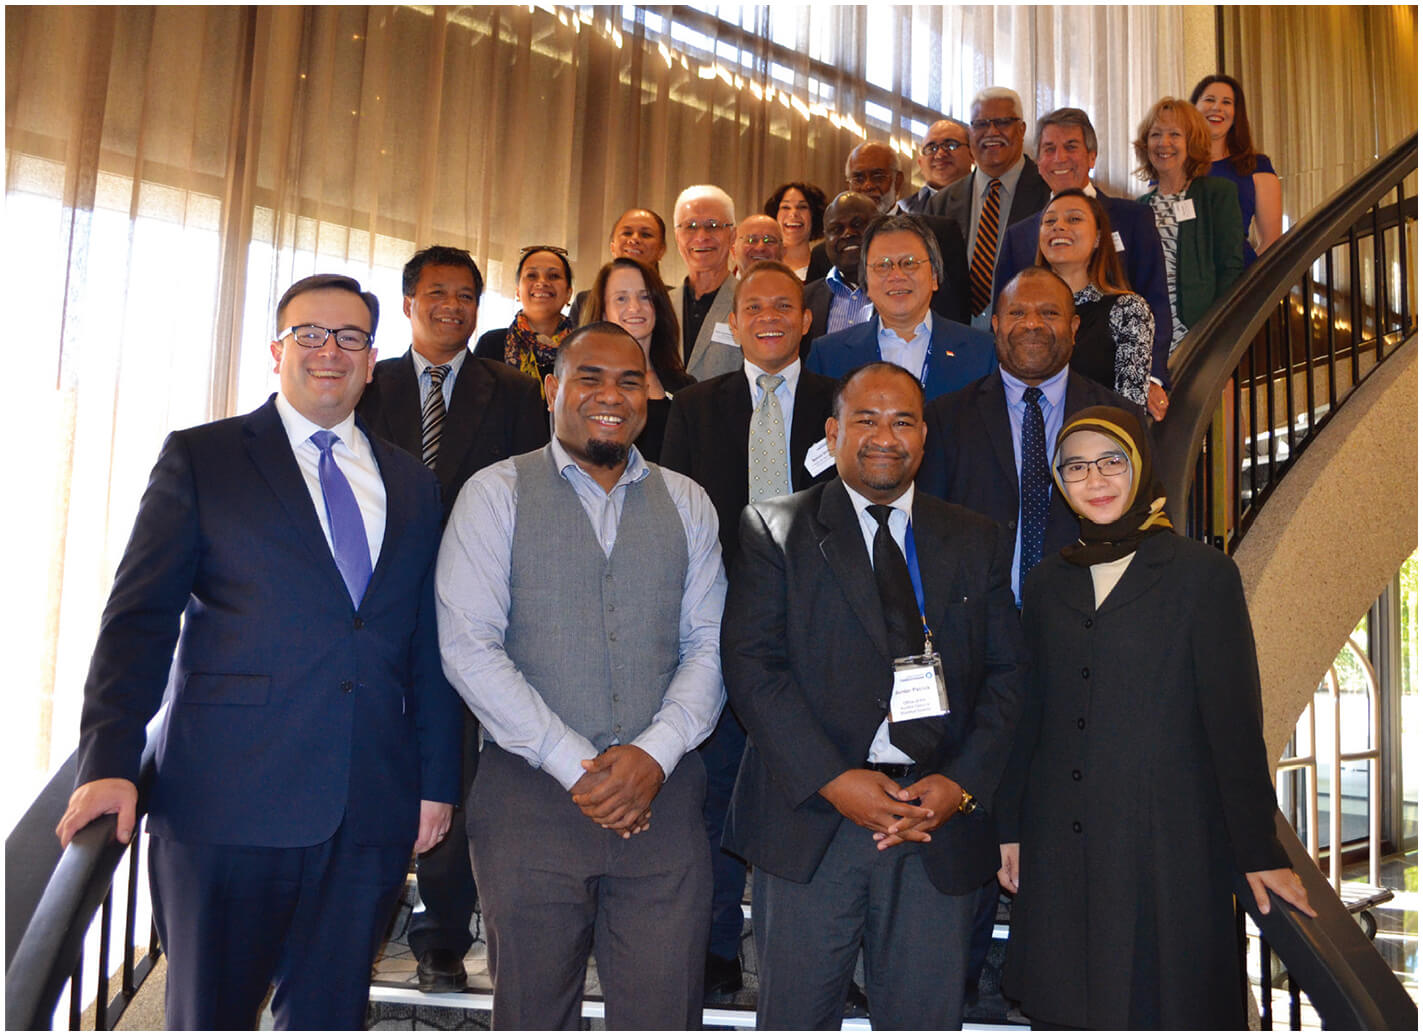 Integrity leaders from the Asia-Pacific Region, International Integrity Leaders Forum, April 2017.